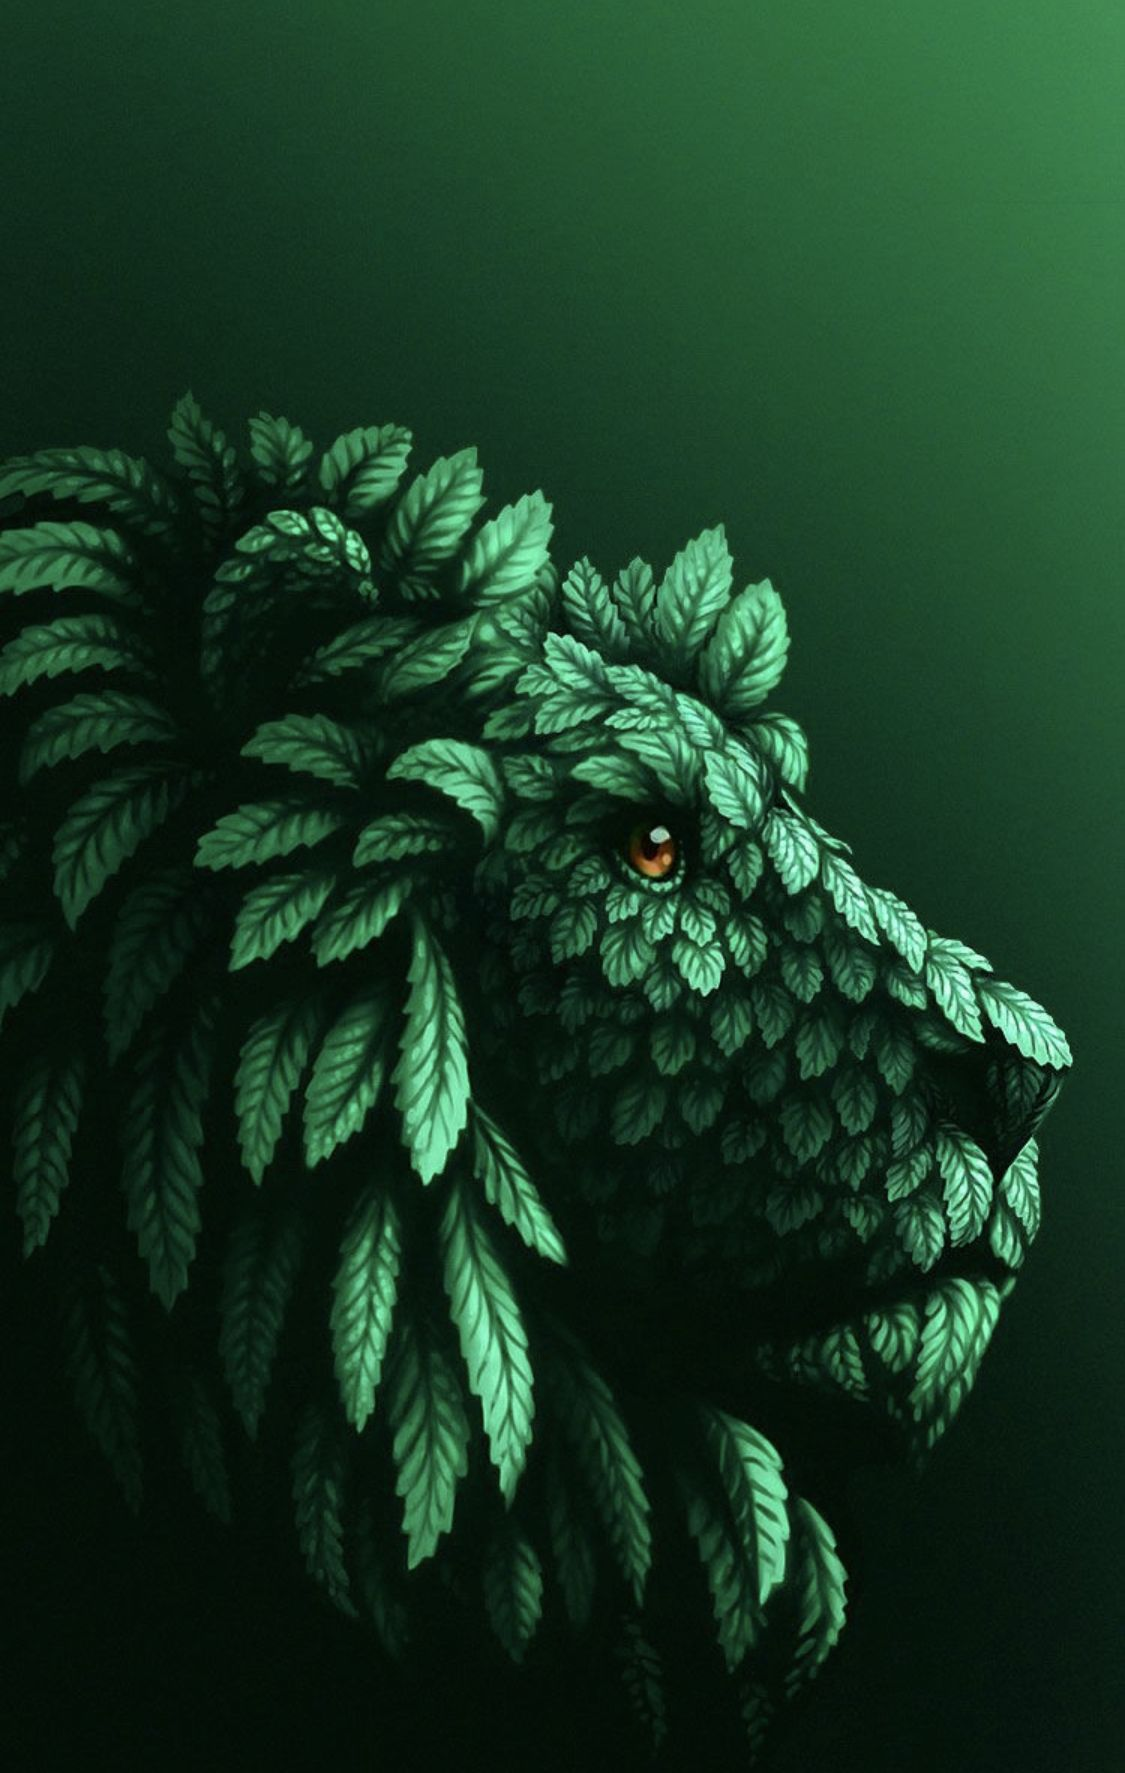 Green Lion Unique Iphone Wallpaper Cool Iphone 6 Wallpapers Best Wallpapers Android